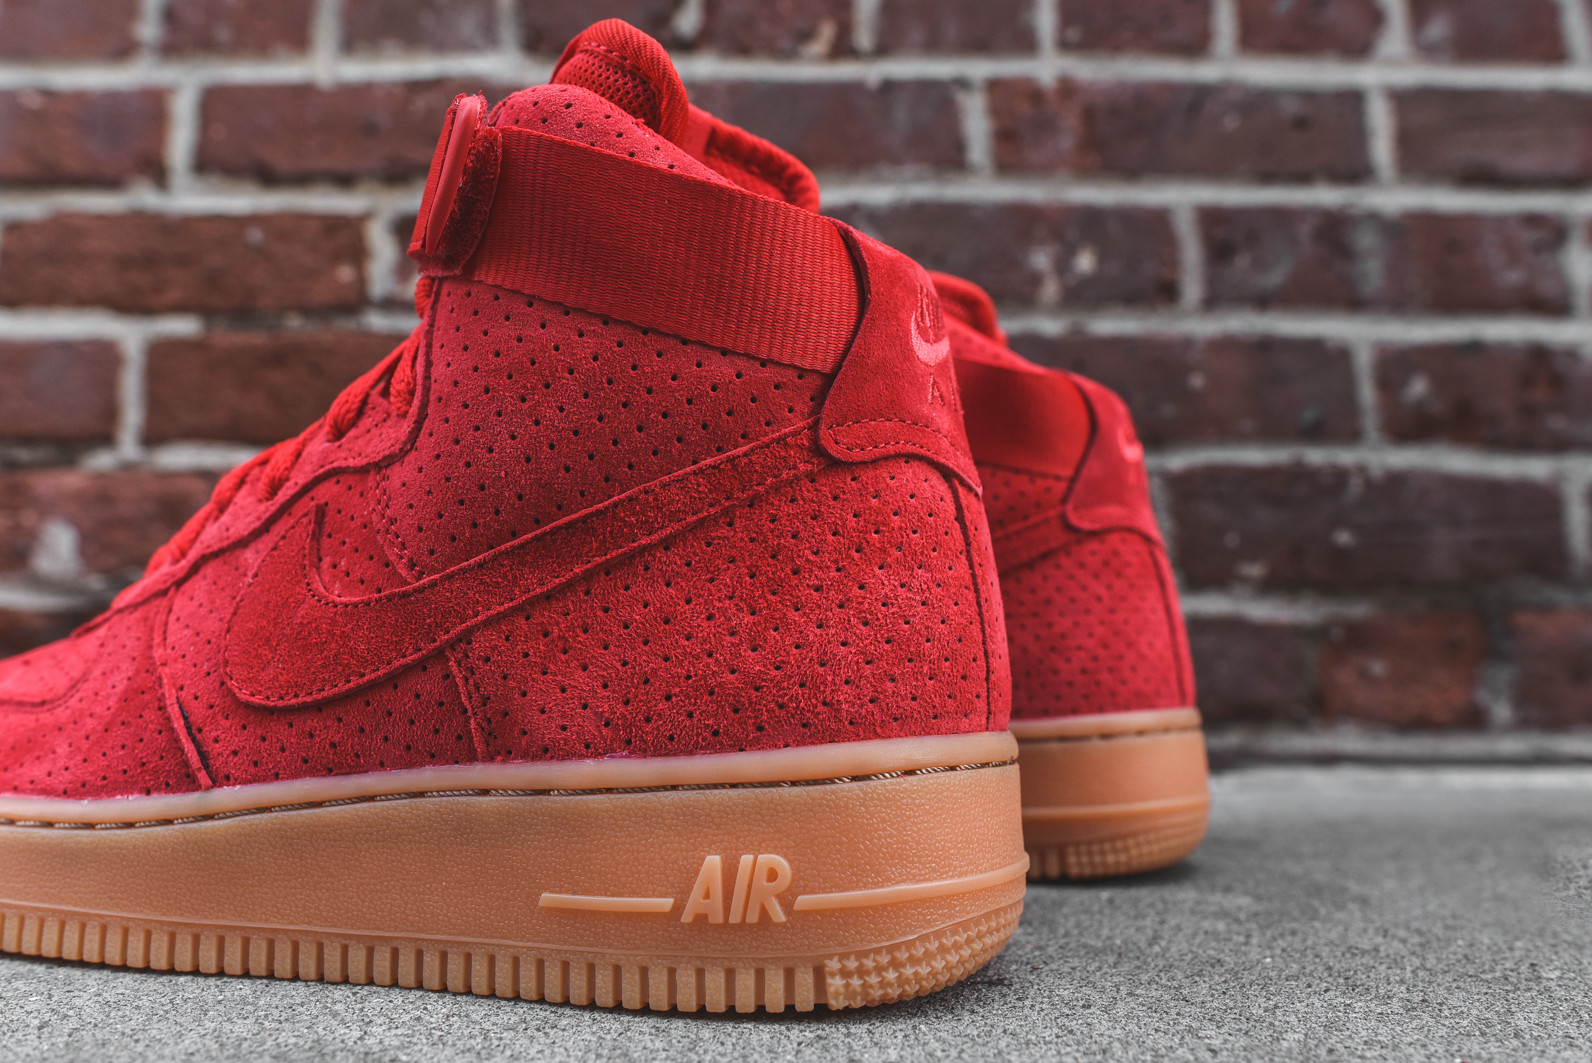 Nike Womens Air Force 1 Hi University Red   Gum - Air 23 - Air ... 8864c25744